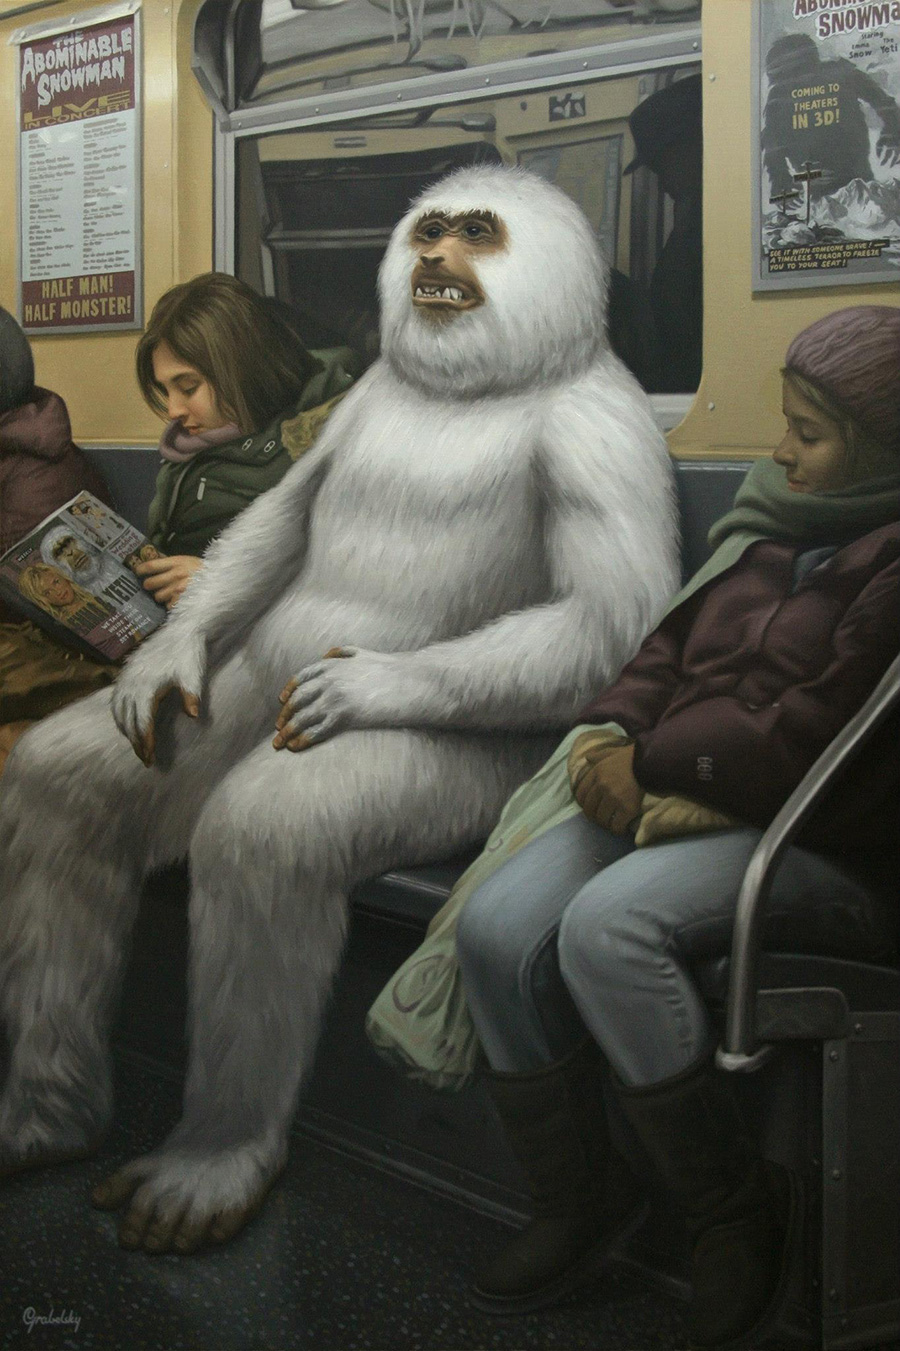 The Abominable Snowman - Anomaly - Oil Painting by Matthew Grabelsky